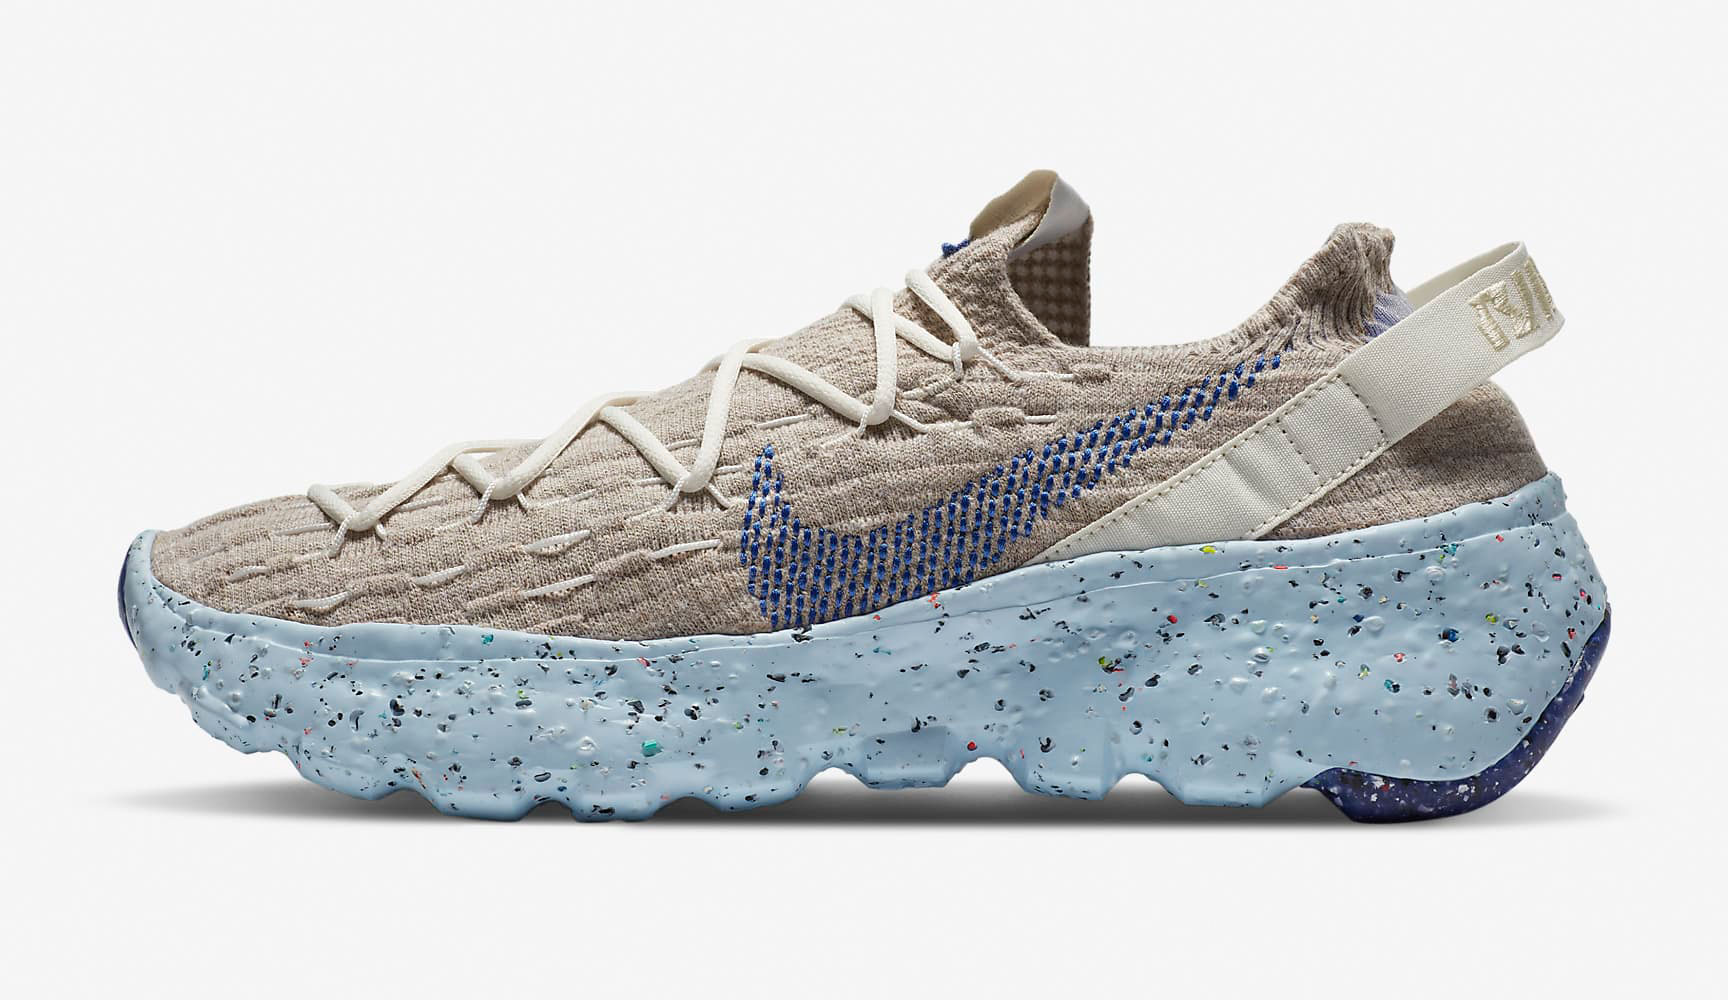 nike-space-hippie-04-sail-astronomy-blue-release-date